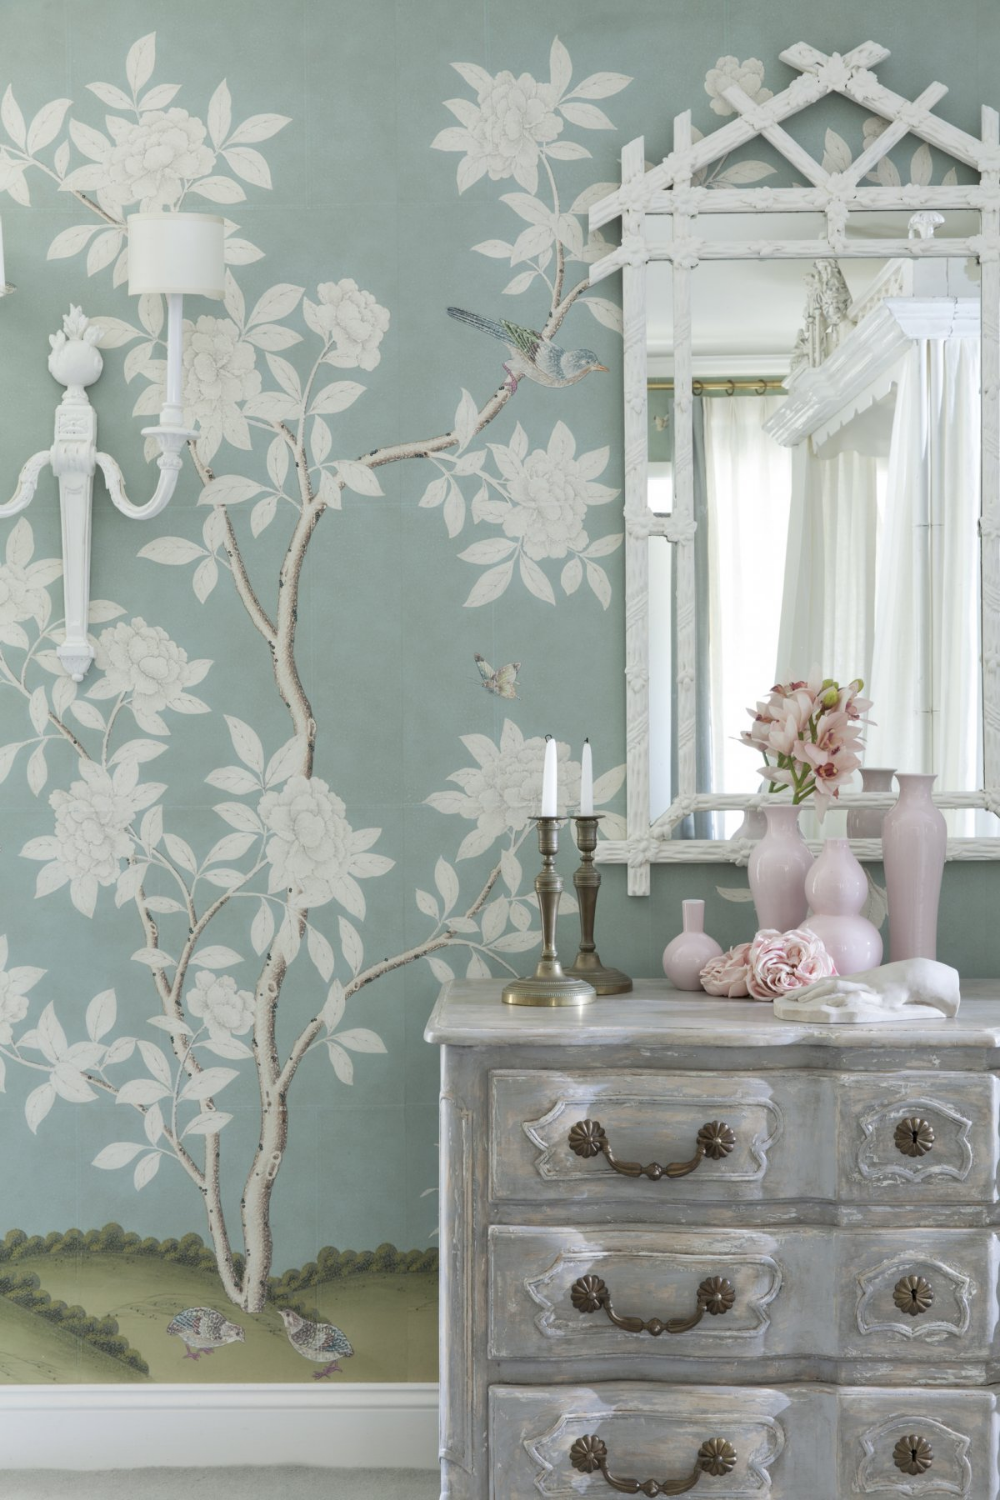 Gracie in 2020 Chinoiserie wallpaper, Gracie wallpaper